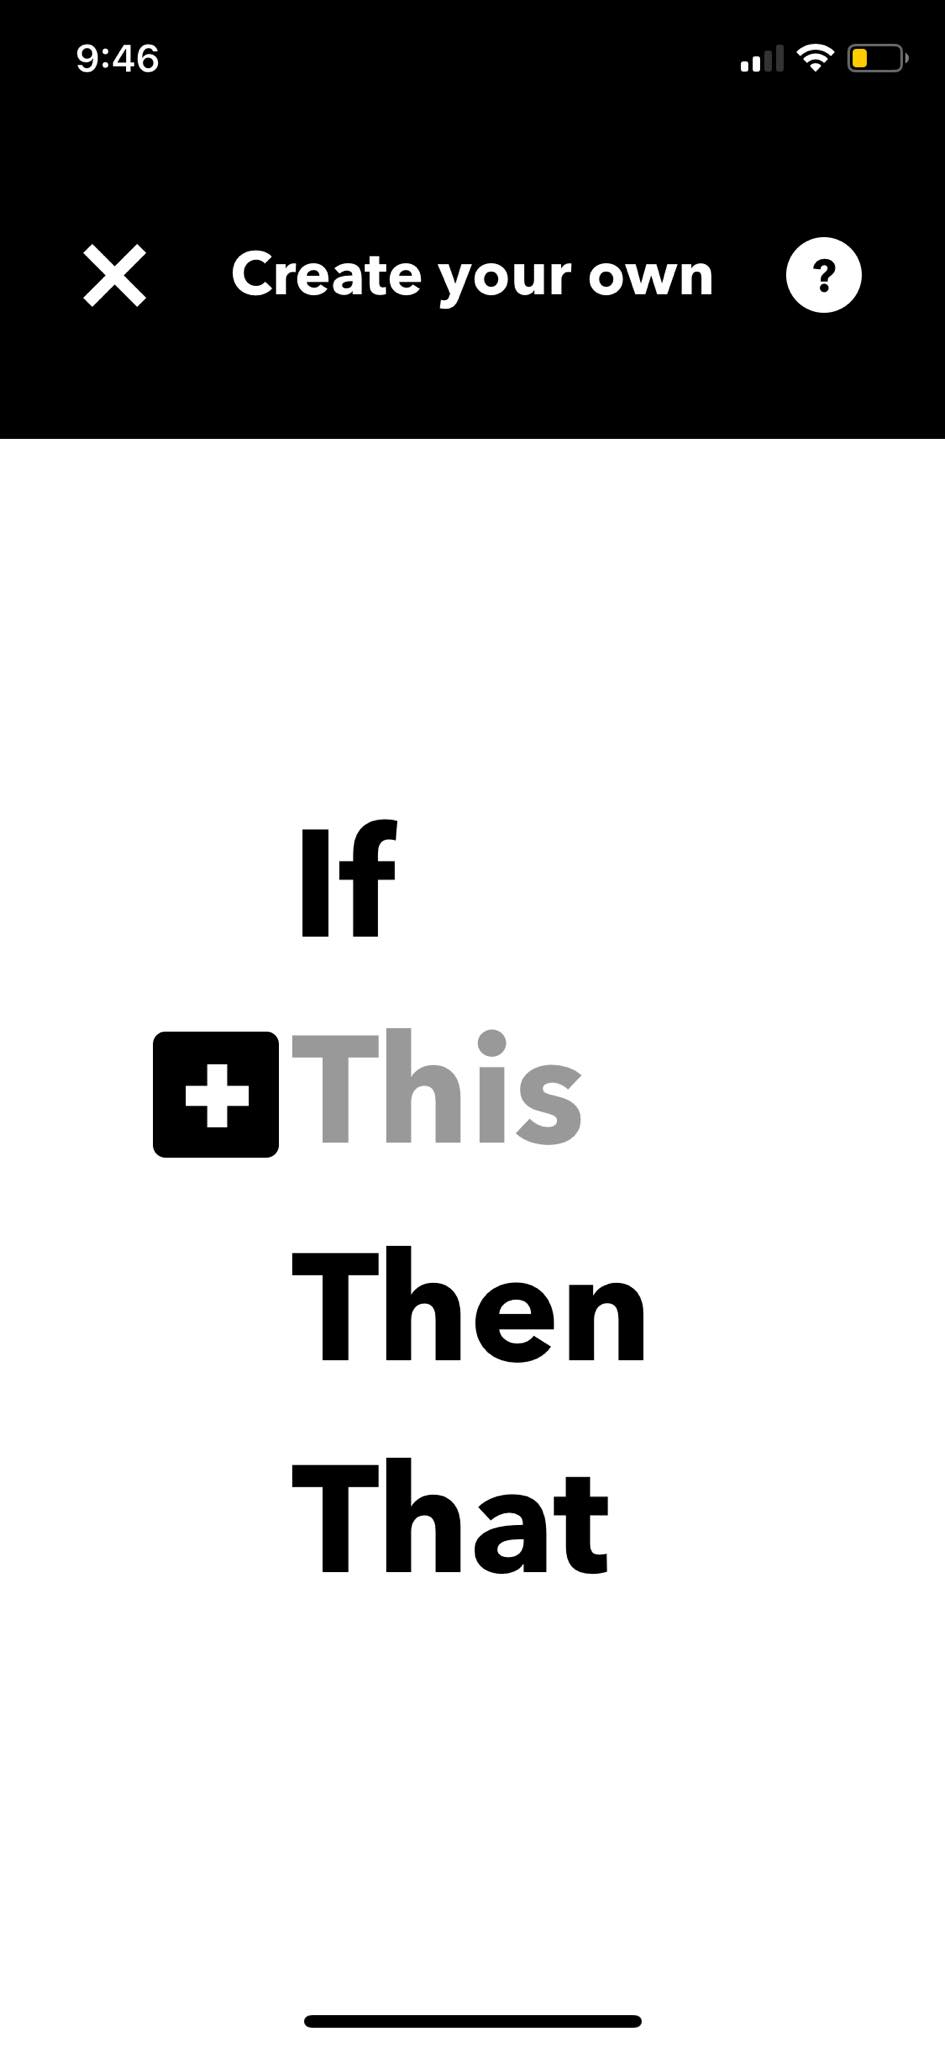 Create on iOS by IFTTT from UIGarage